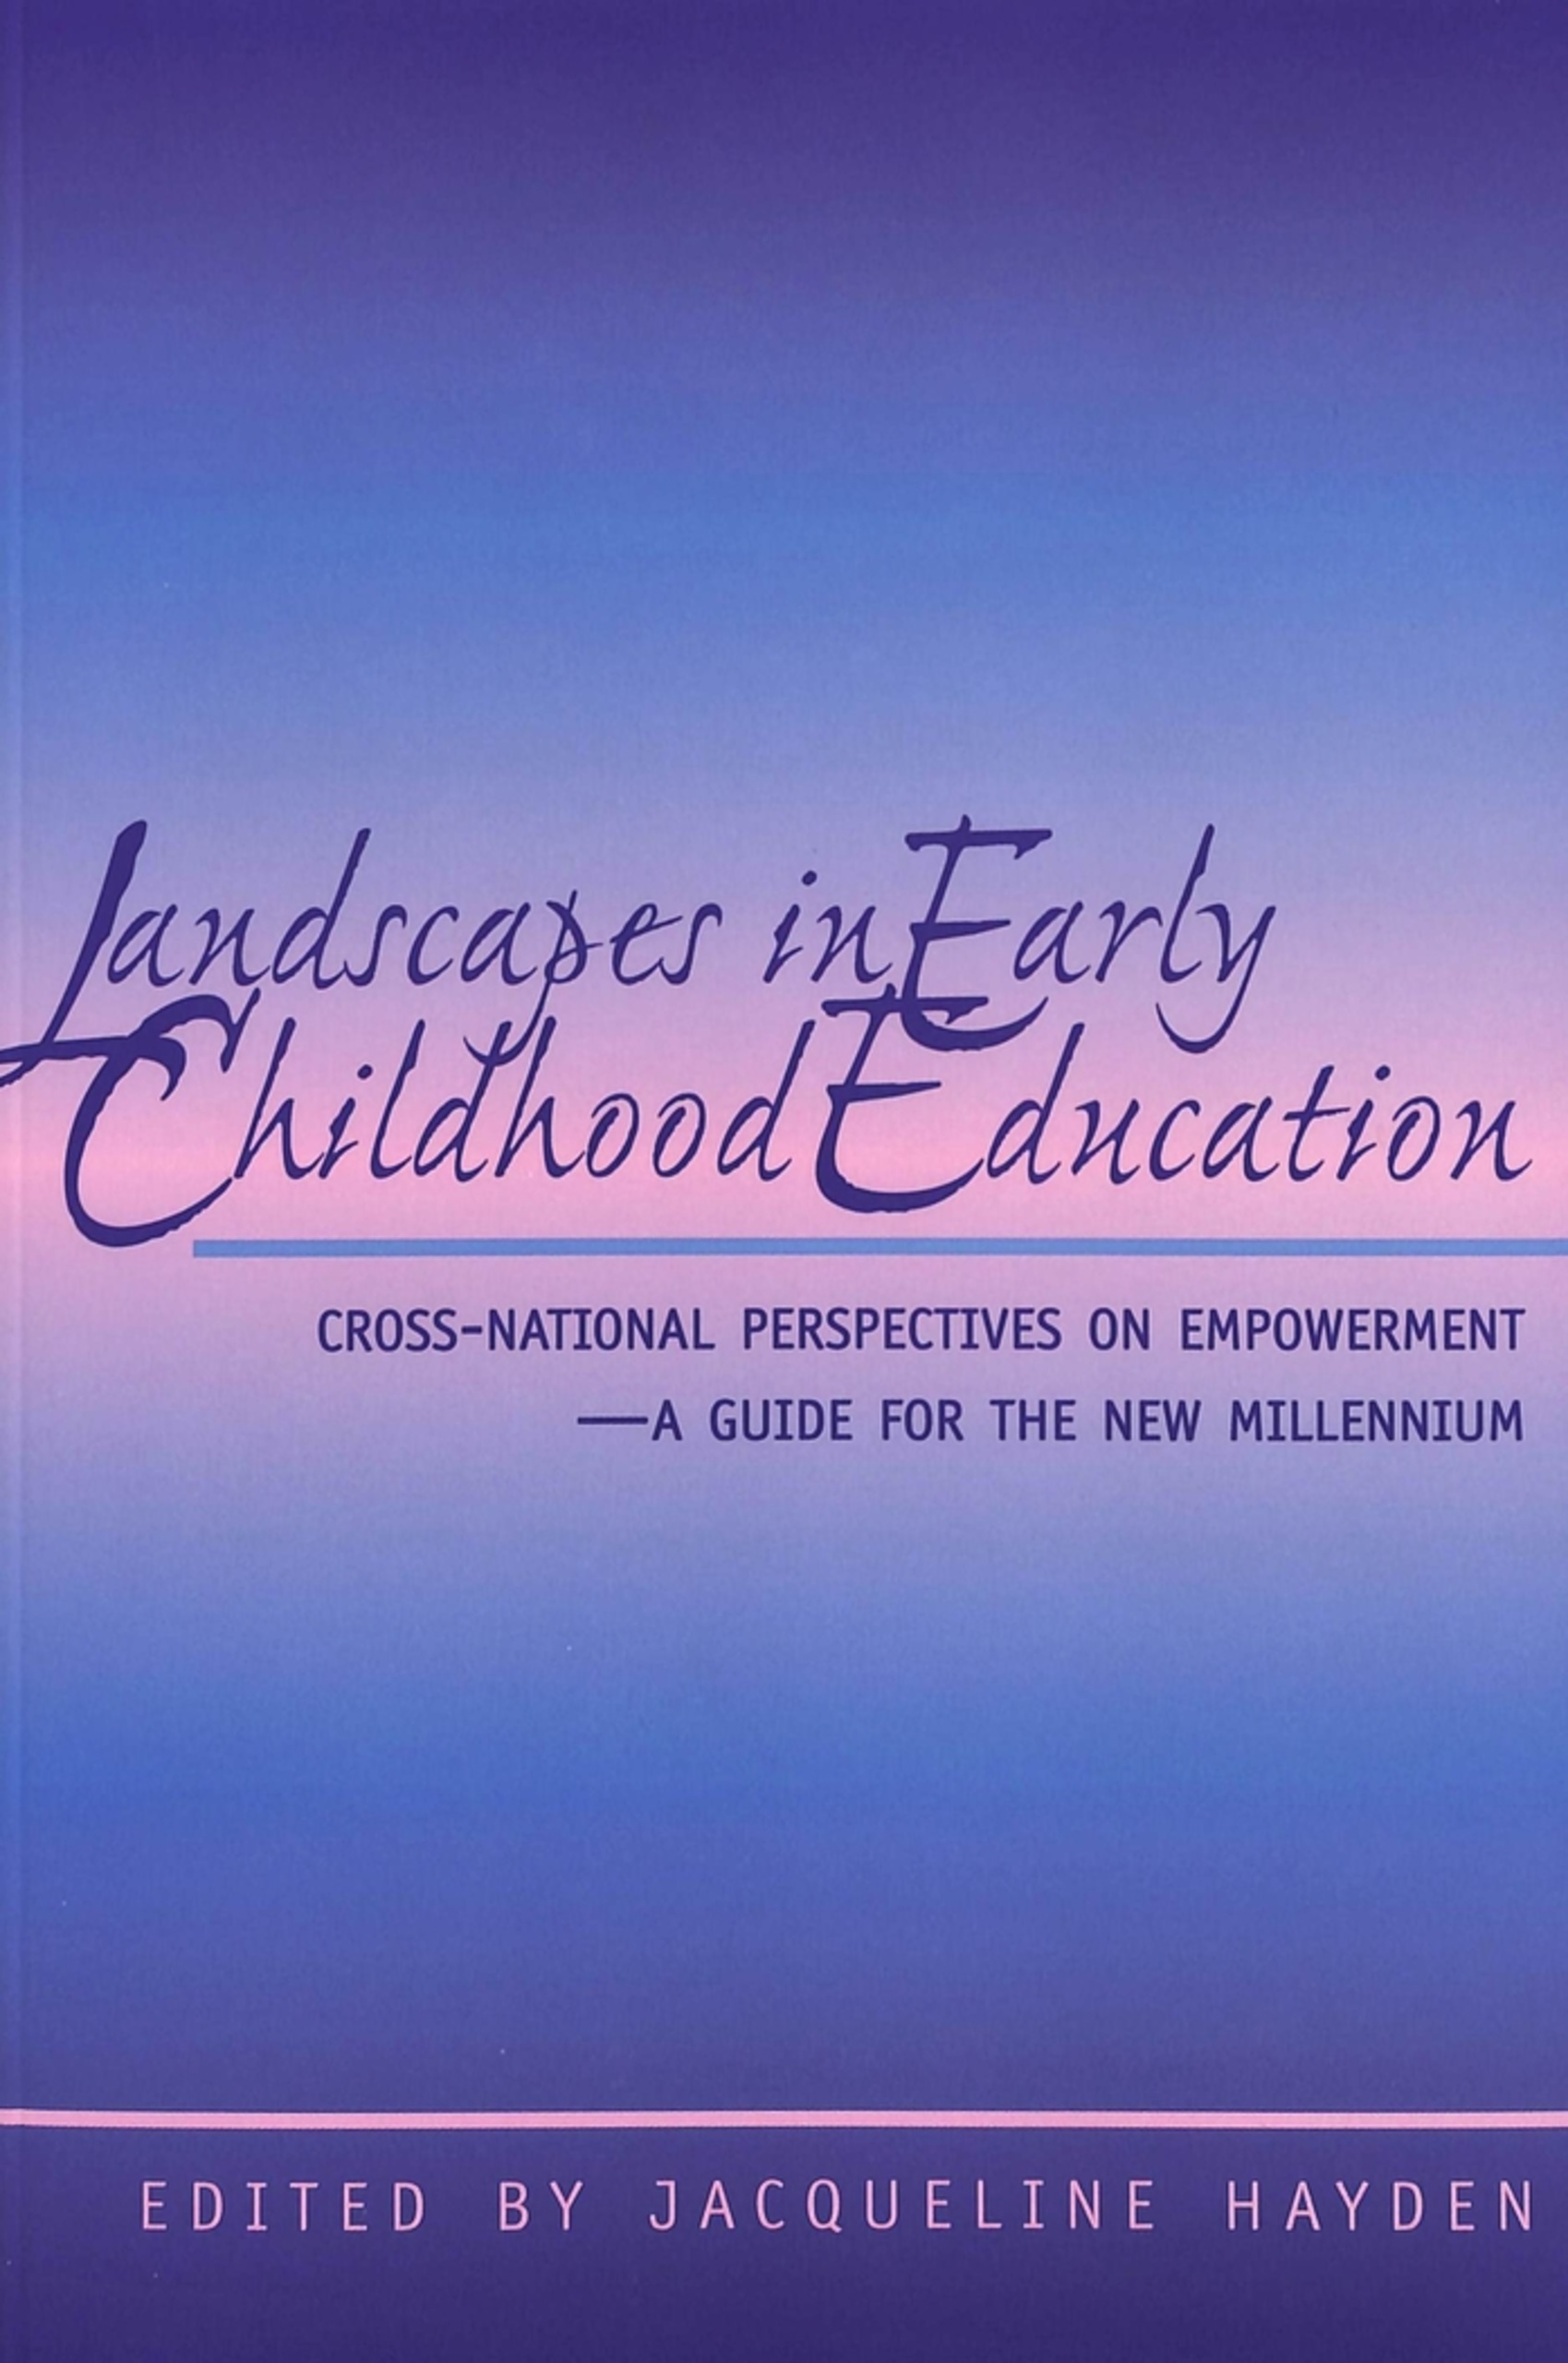 Title: Landscapes in Early Childhood Education